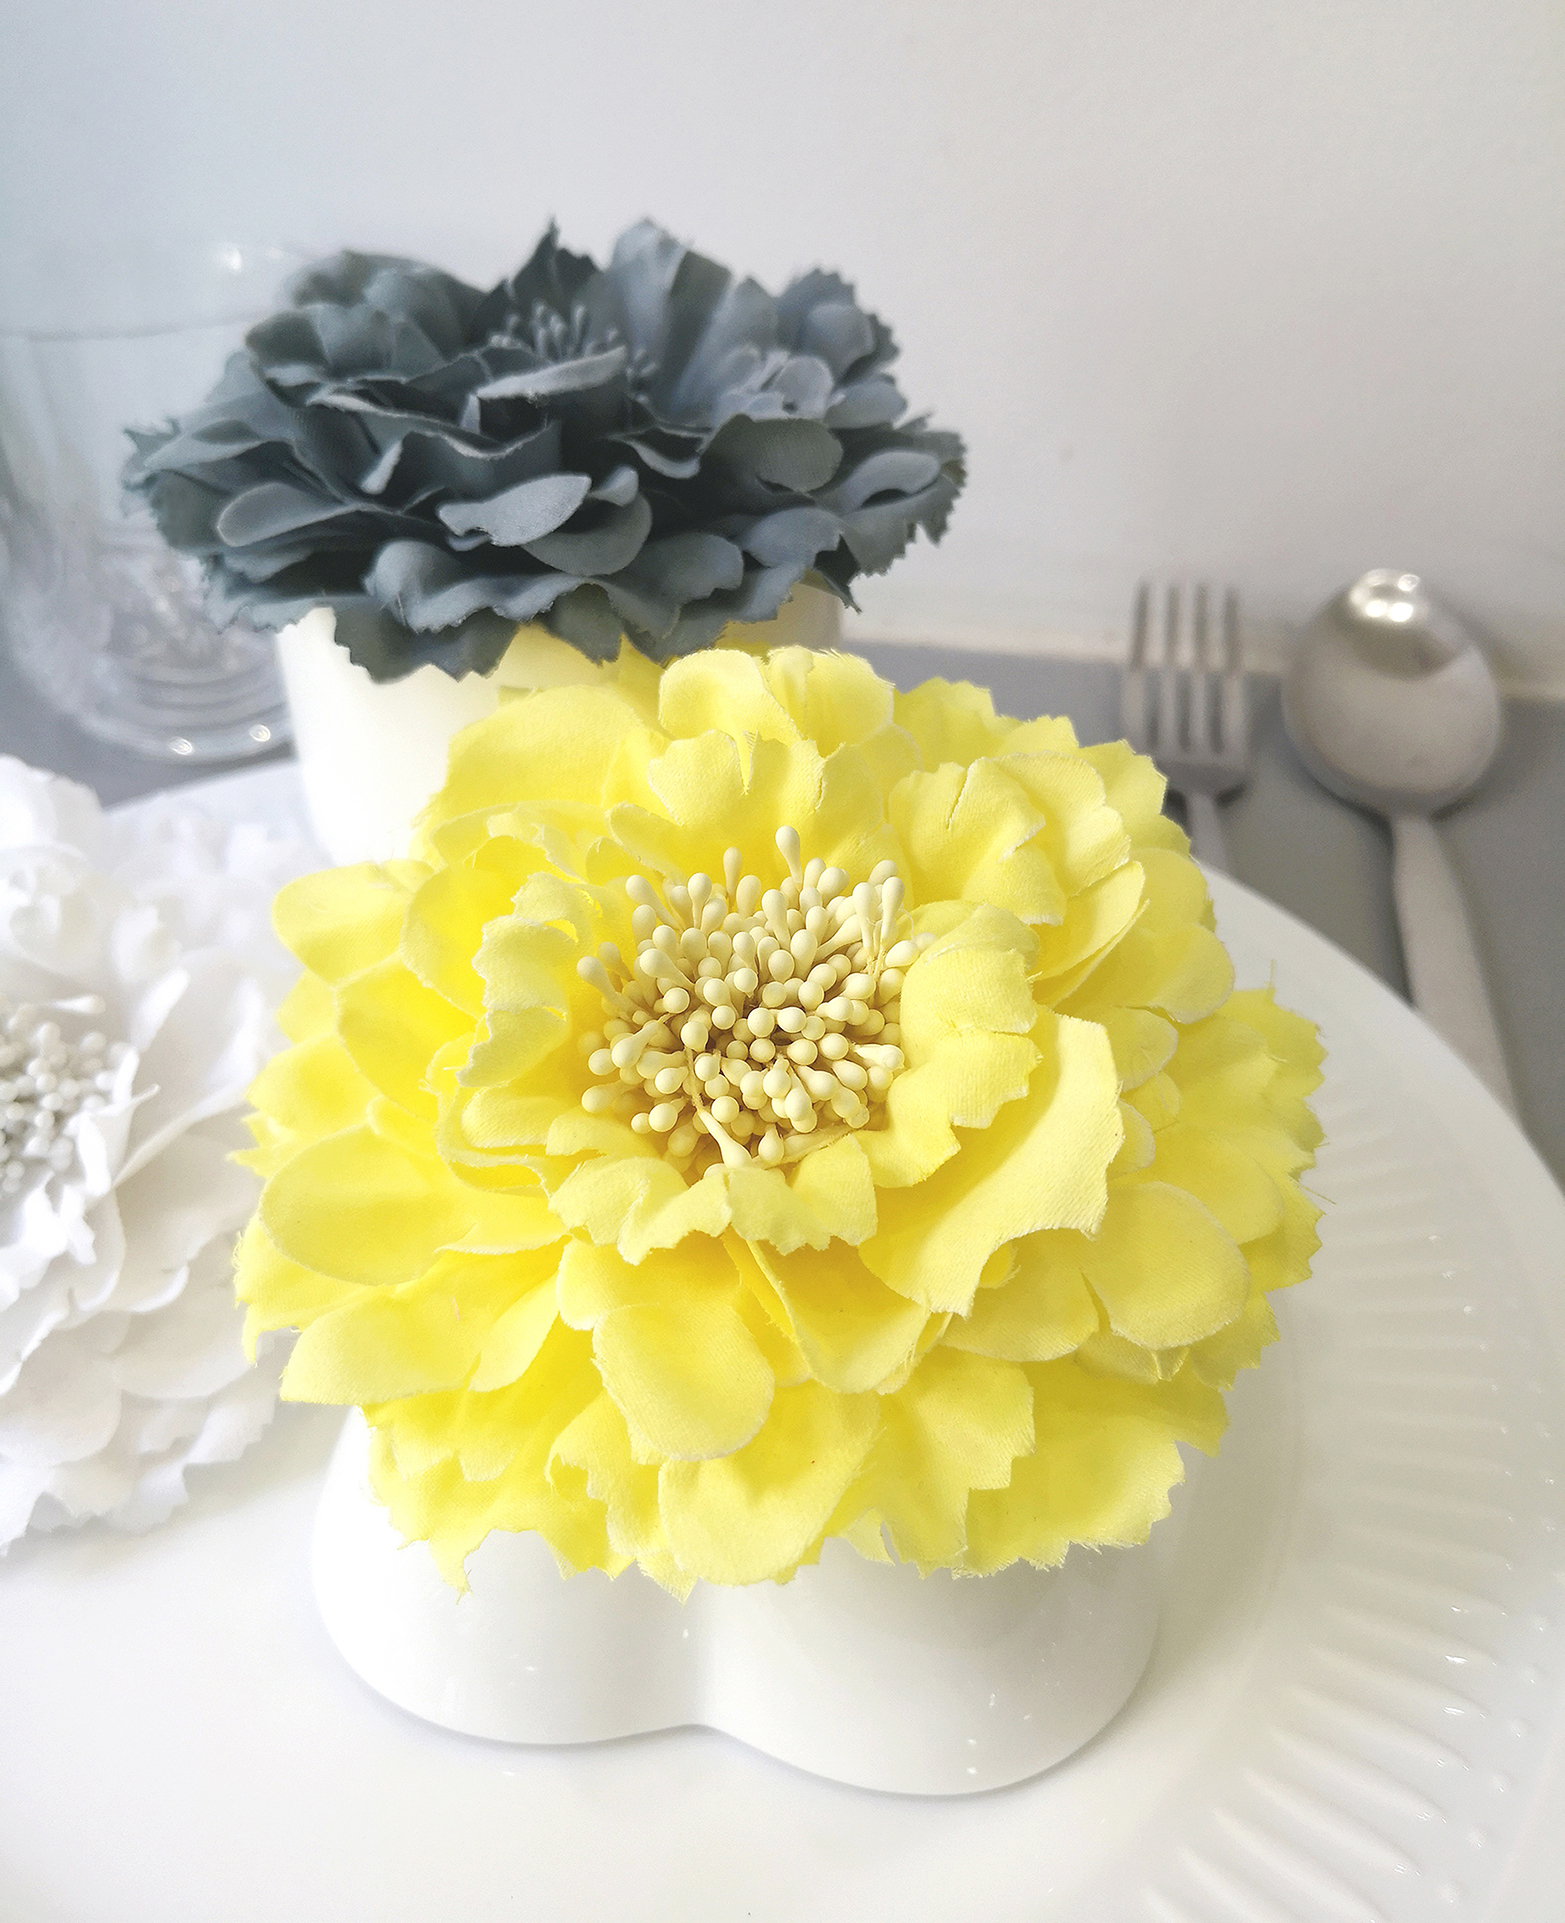 6 Pcs Large Romantic Yellow And Grey Peony Flower Napkin Rings Artificial Floral Napkin Holders Bridal Shower Decor Tea Party Decoration Sold By Ownwonderland On Storenvy